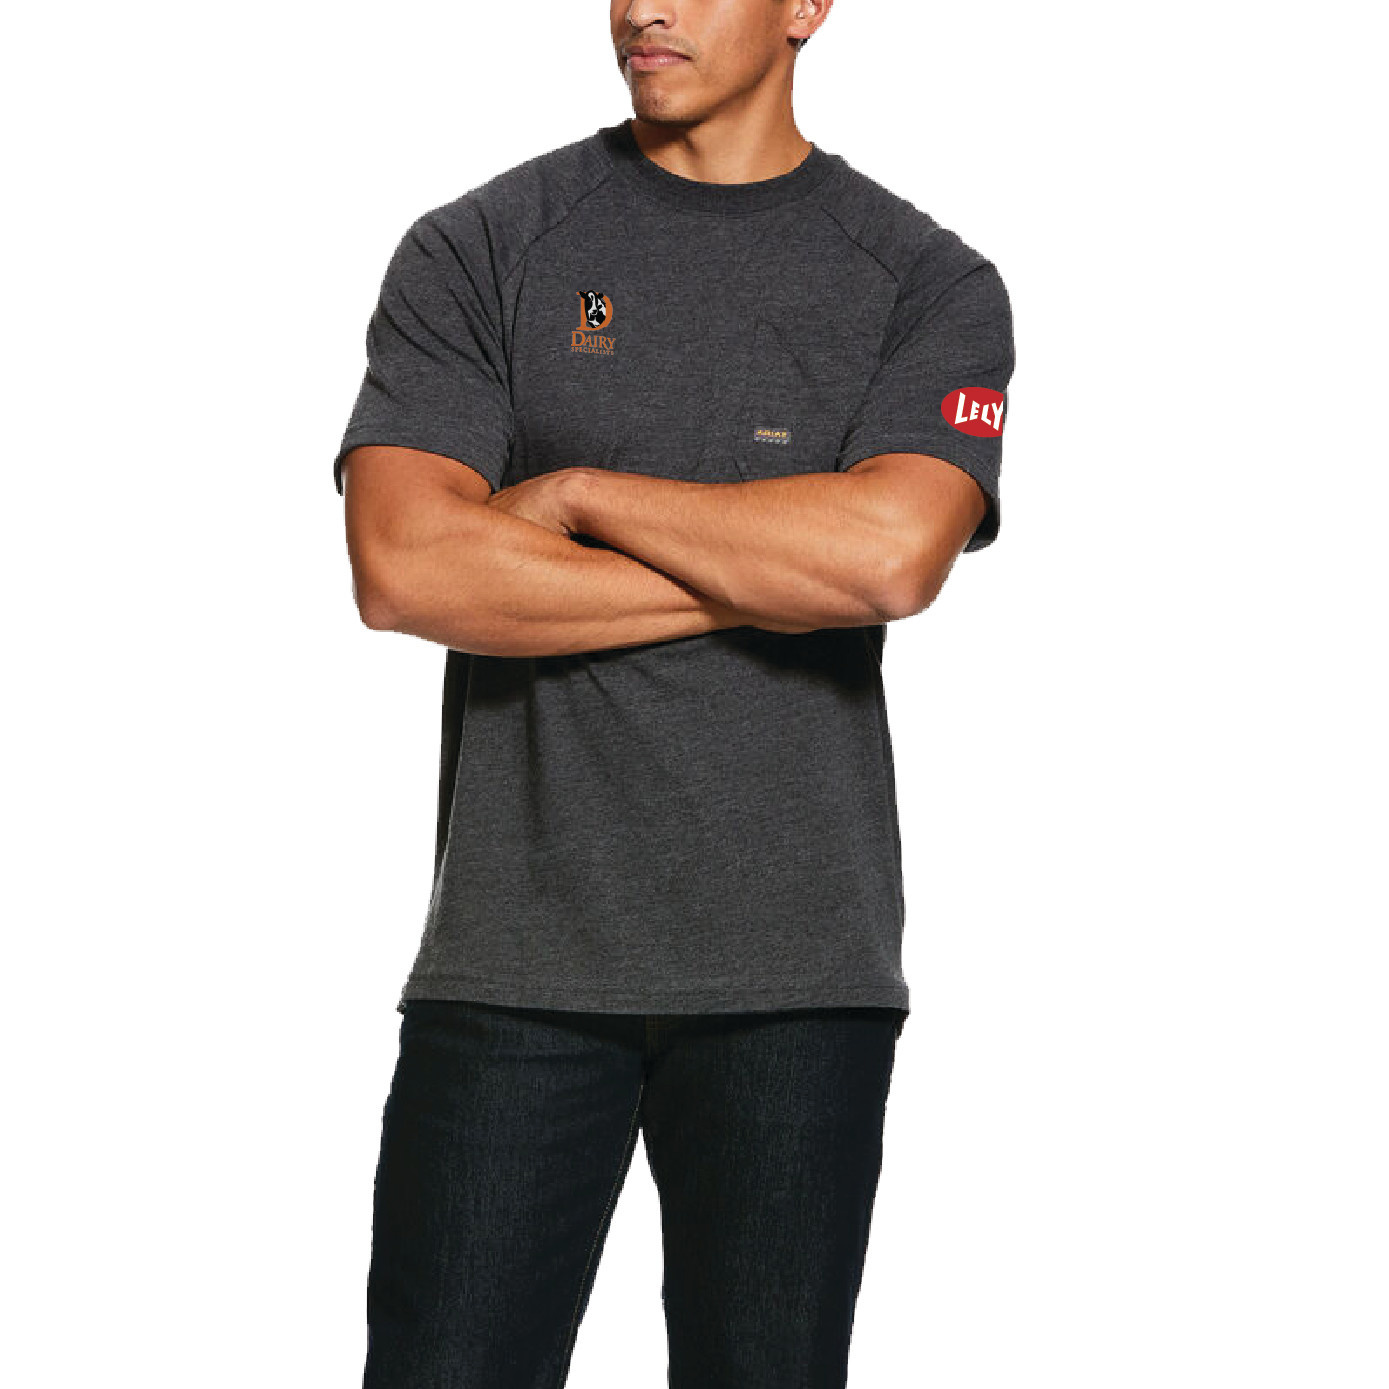 Ariat Ariat Rebar Cotton Strong T-Shirt (Charcoal Heather)